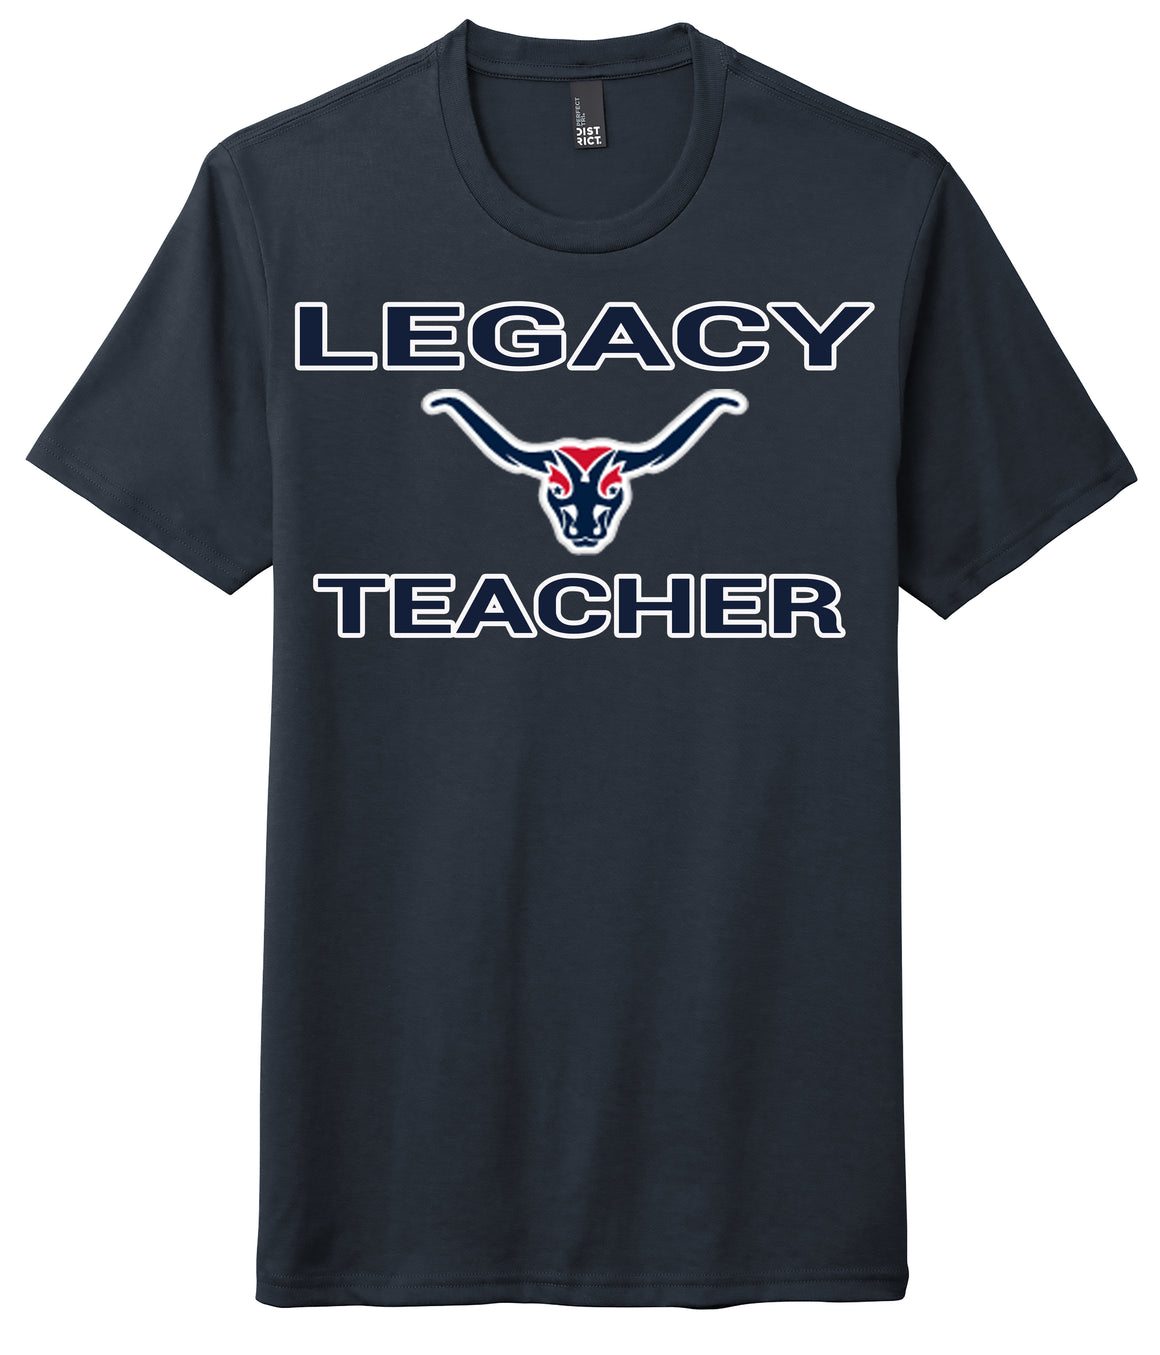 Legacy Traditional School Laveen - Customizable Shirt